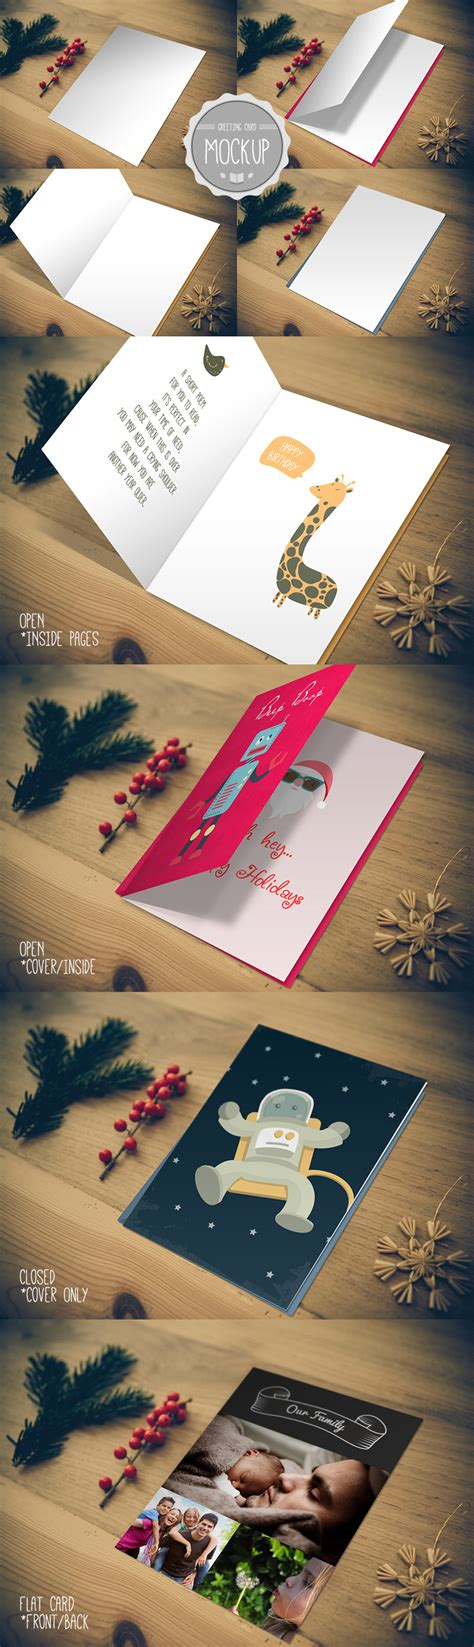 Photoshop Greeting Card Template Psd by Greeting Card Mockup Photoshop Psd Template On Behance